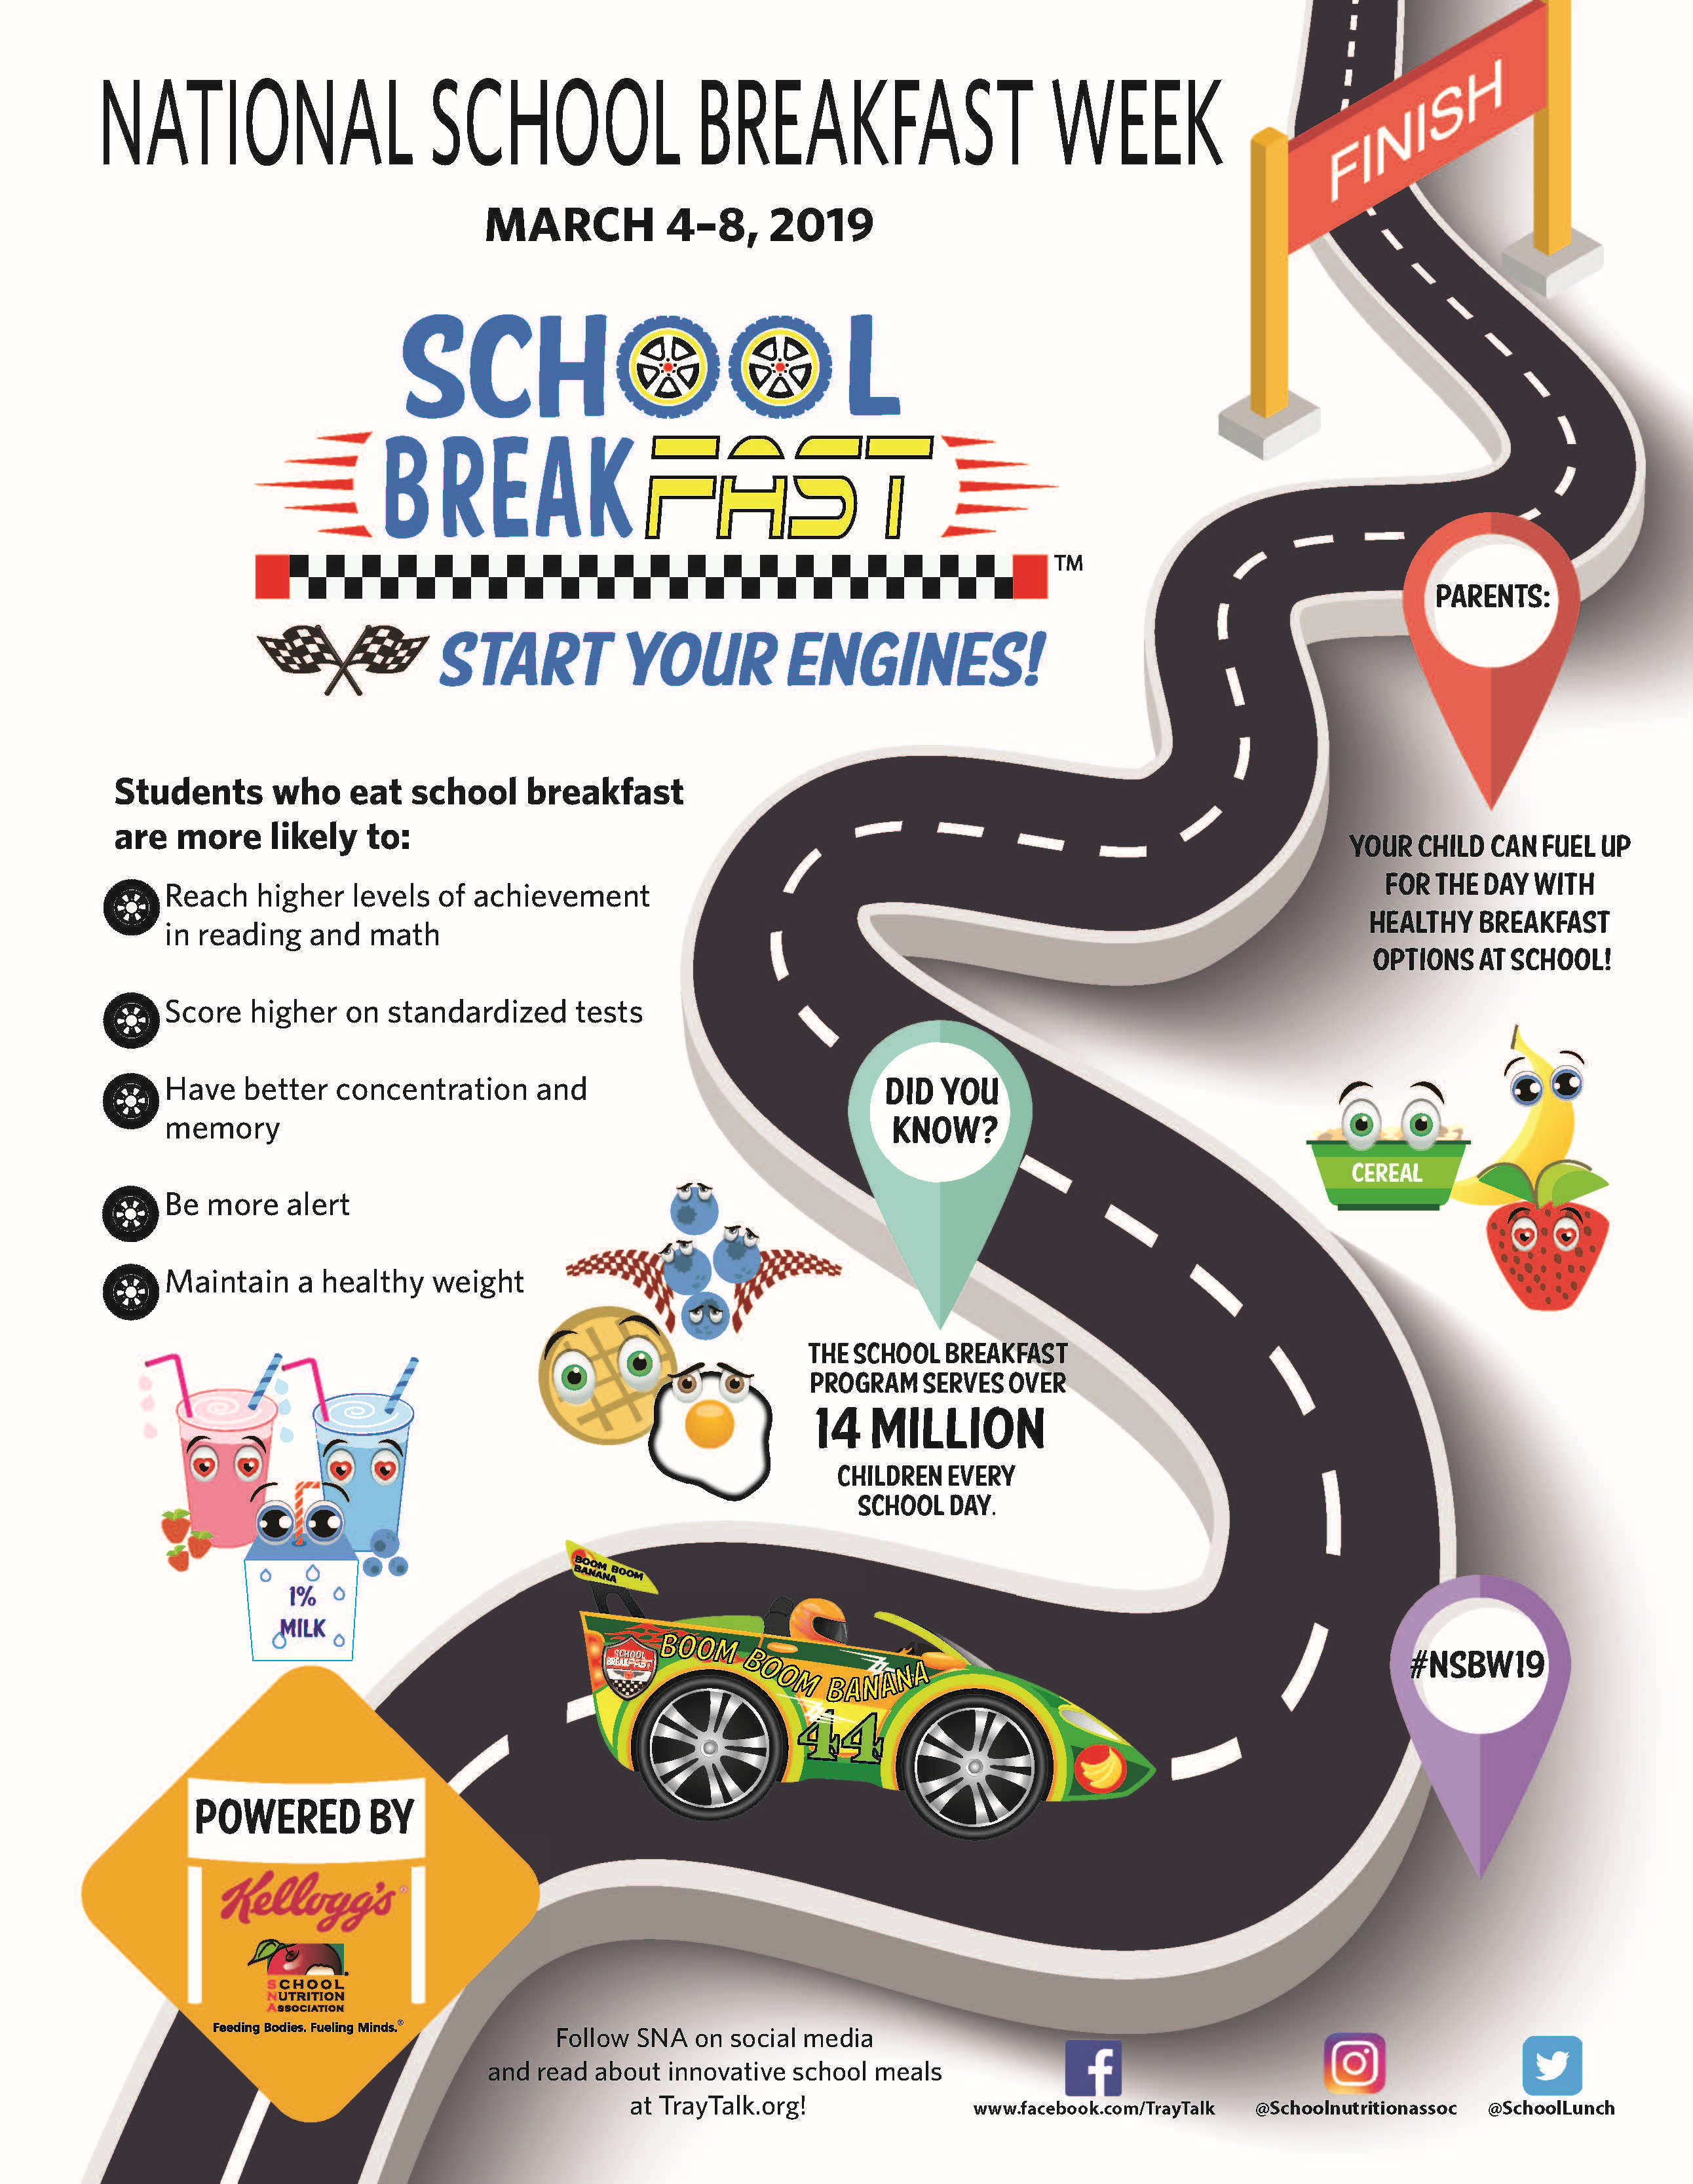 National School Breakfast Week 2019 infographic